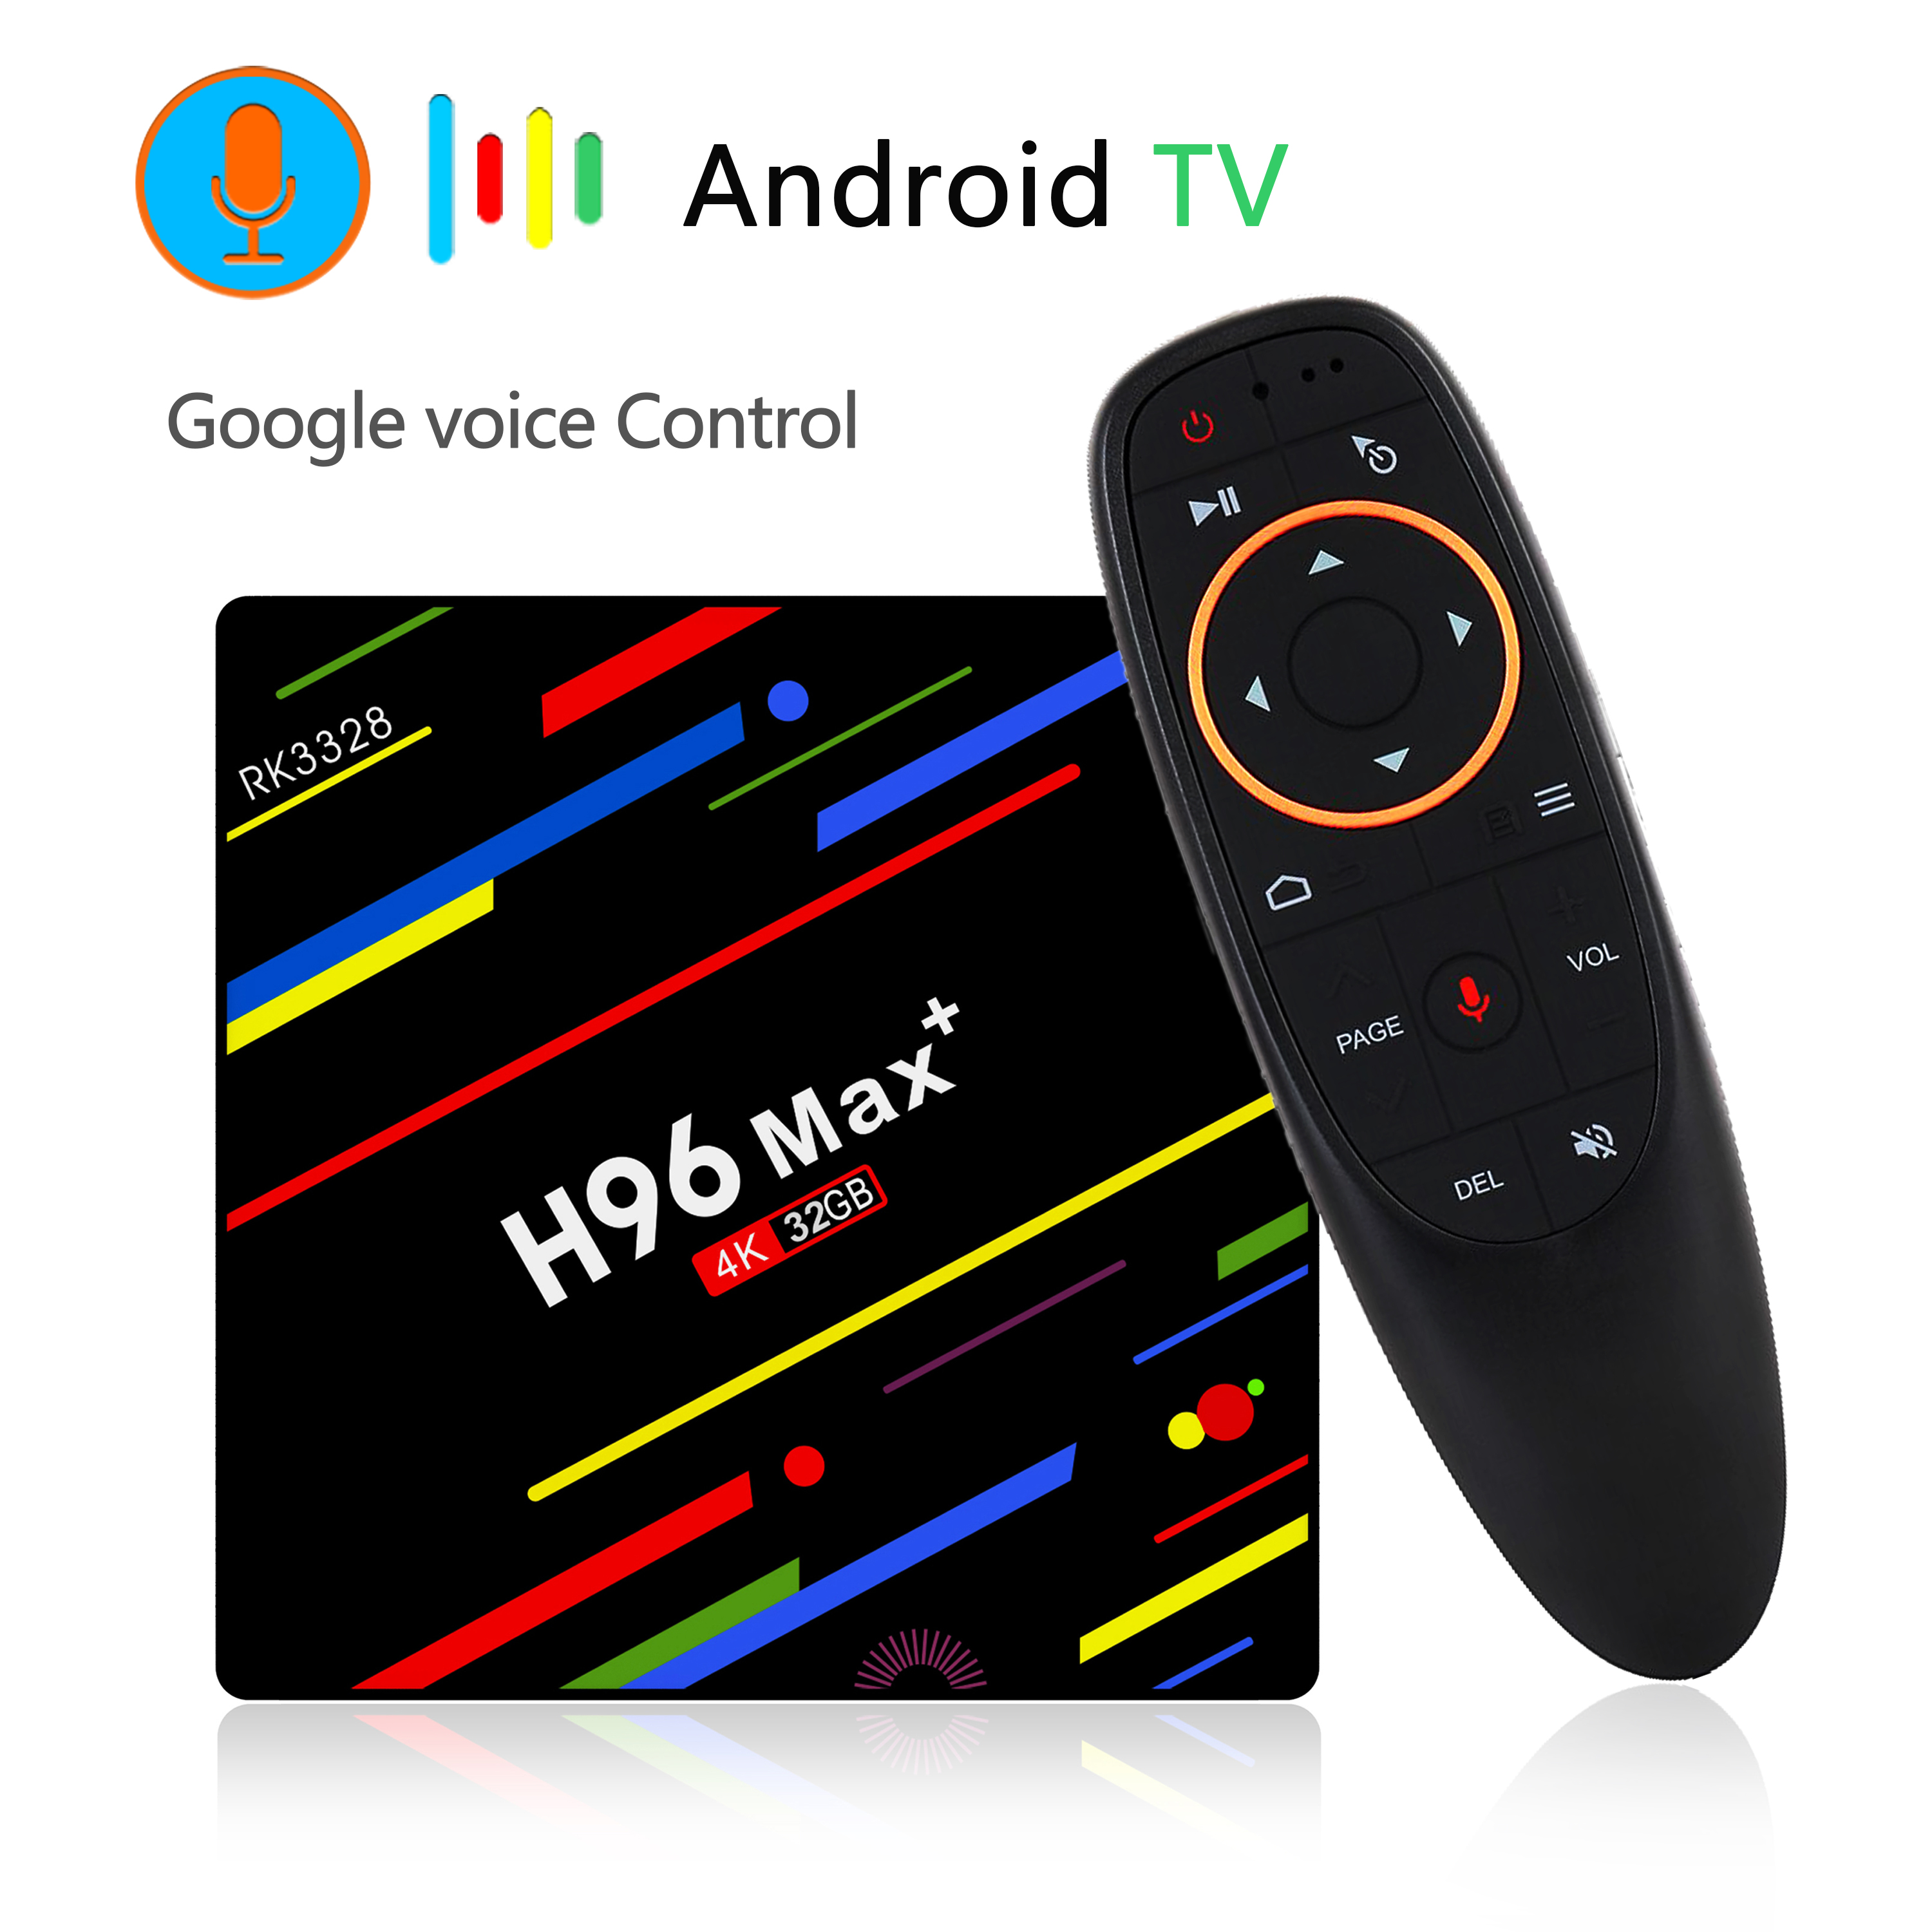 H96 Max Plus RK3328 4GB RAM 64GB ROM Android 8.1 USB3.0 5G WIFI TV Box Support HD Netflix 4K Youtube -US